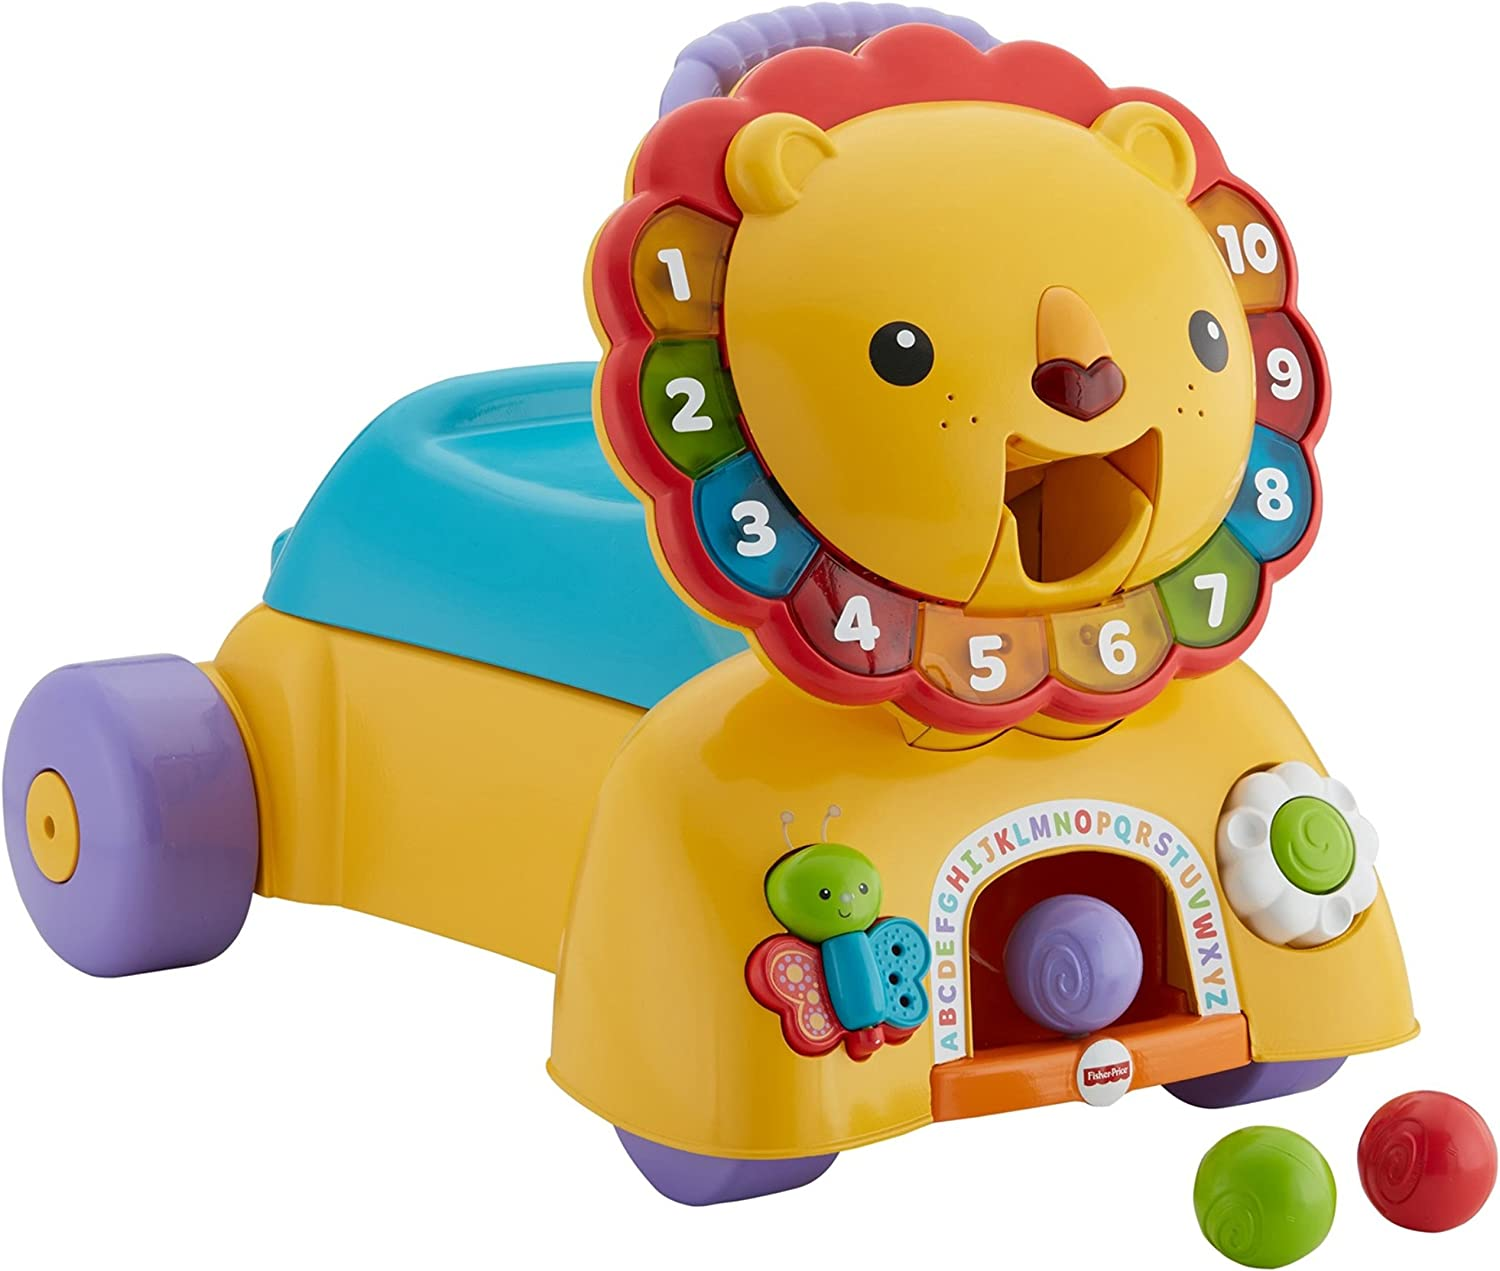 Amazon.com: Juguete Fisher-Price 3-en-1 león que ...